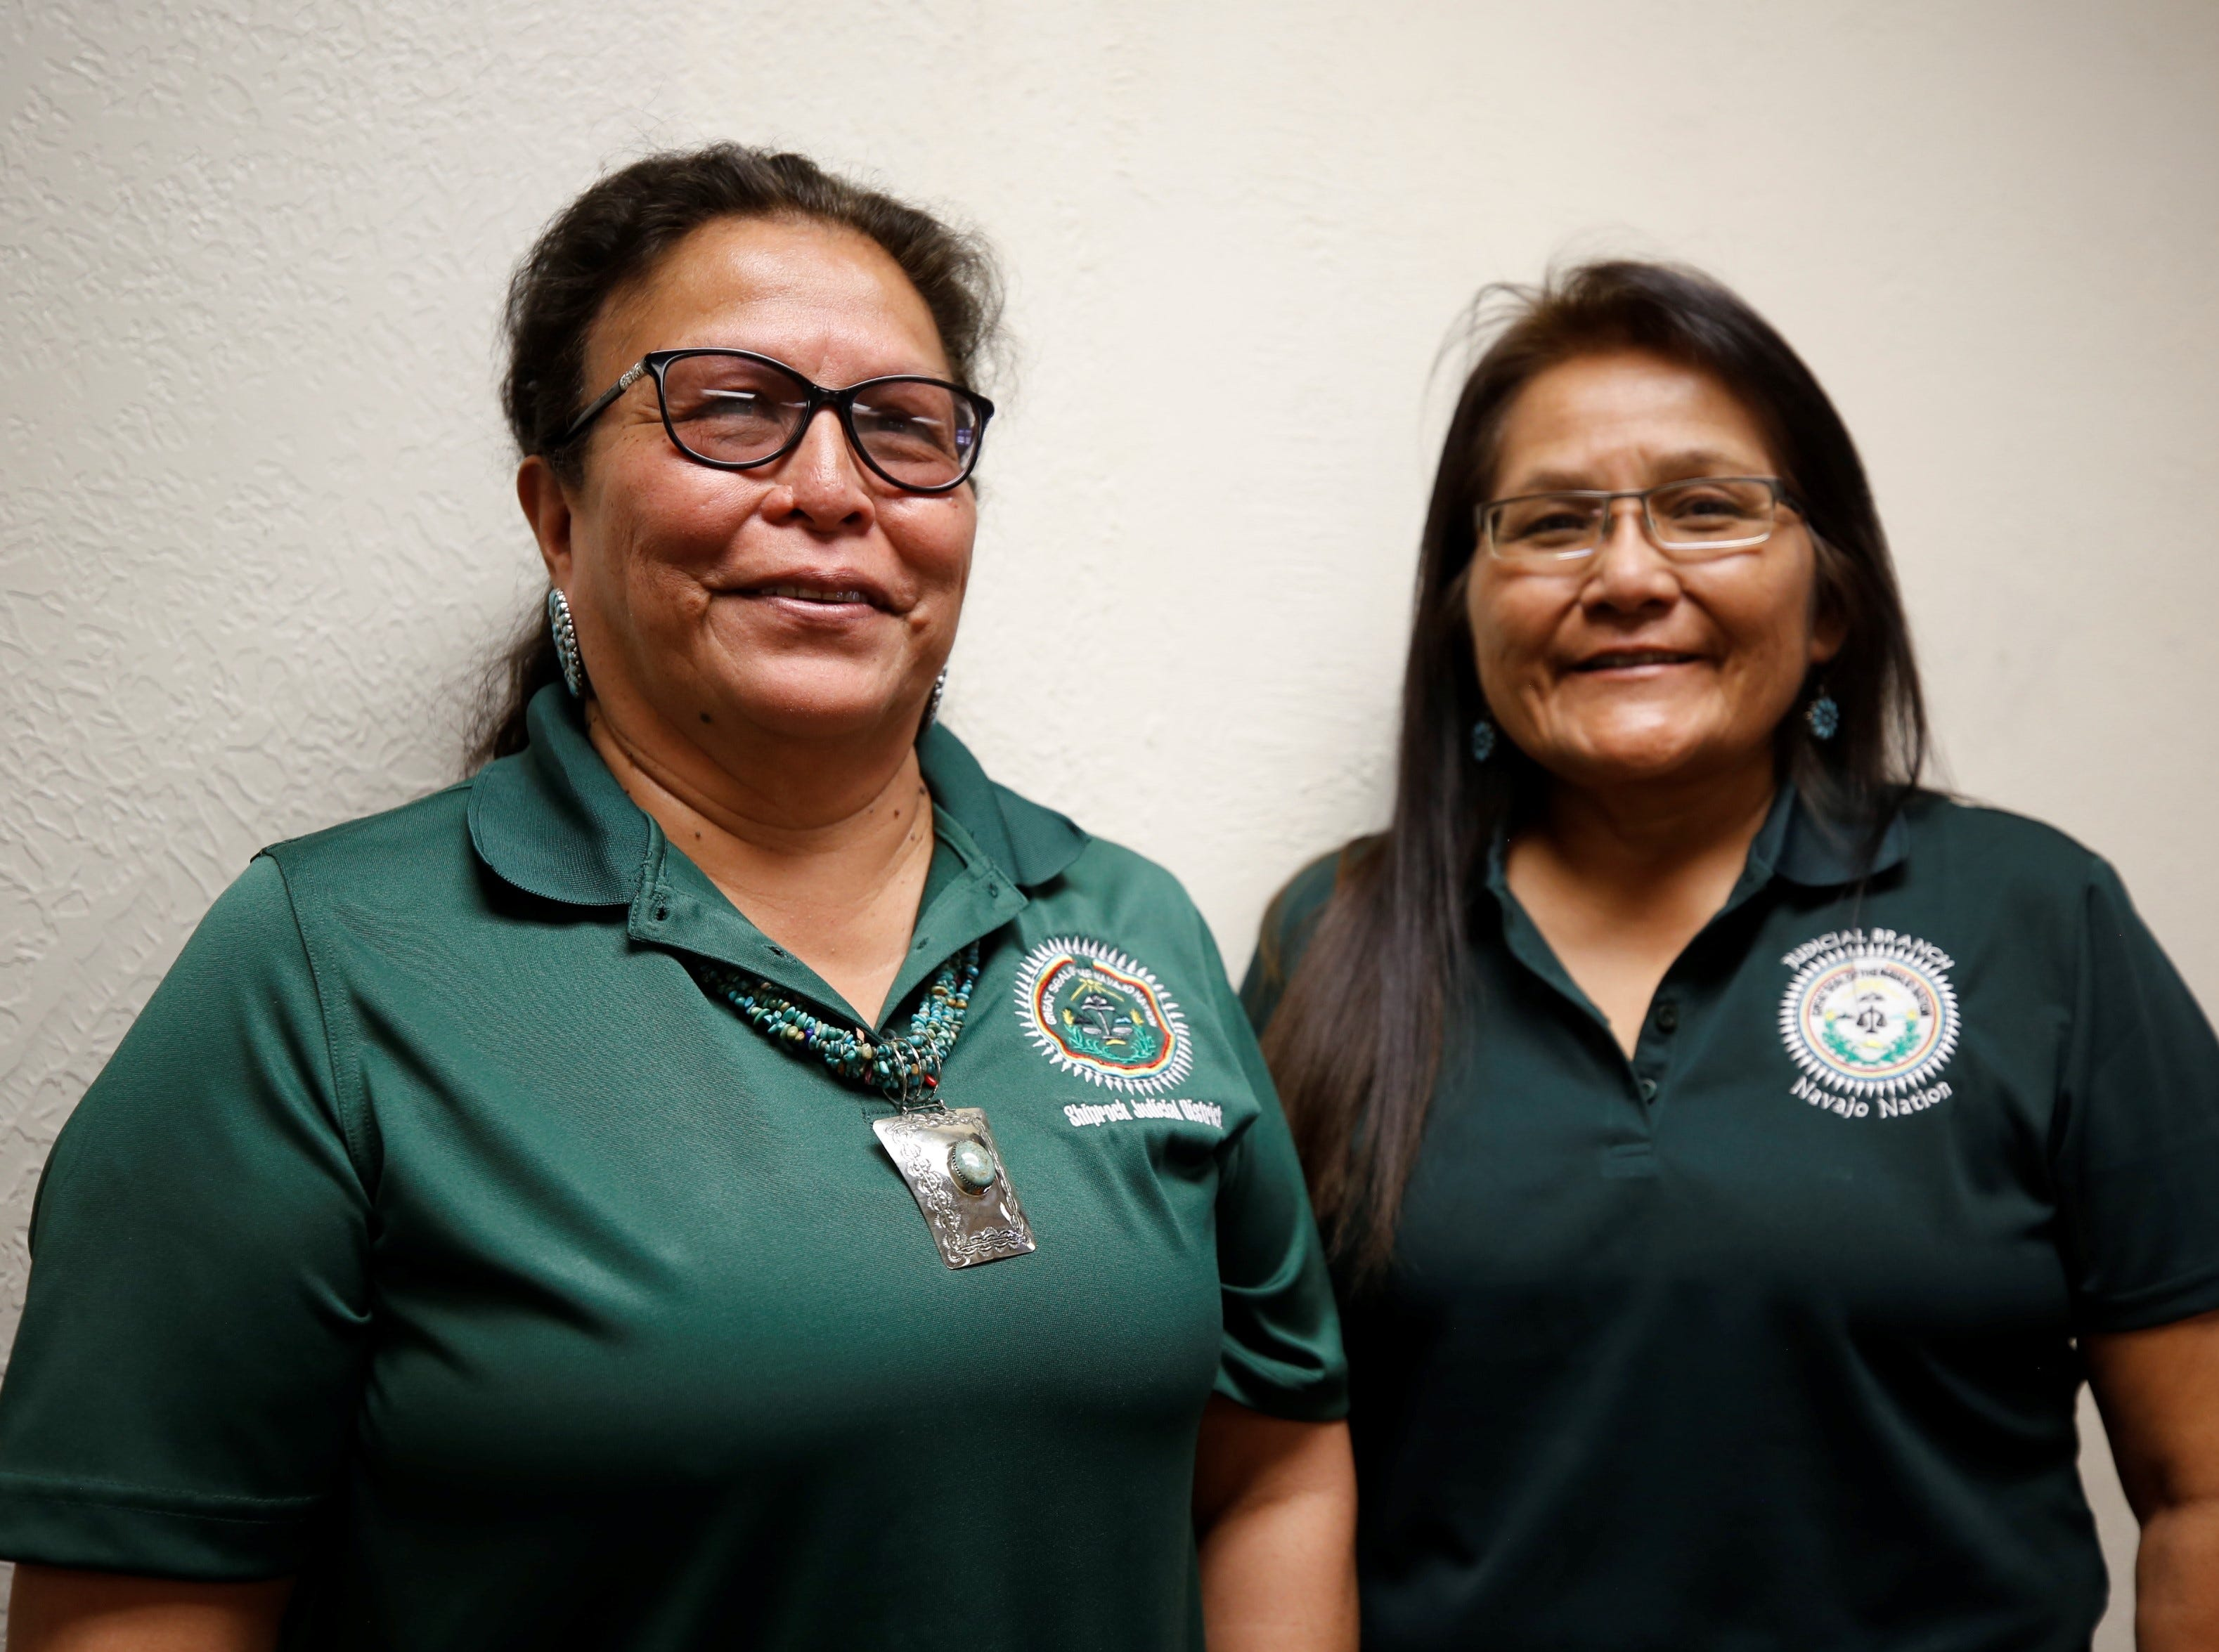 Genevieve Woody, left, and Irene Black have been serving as judges for 13 years for the Navajo Nation Judicial Branch. Woody is the judge for the Shiprock district and Black is the judge for the Aneth, Utah district.